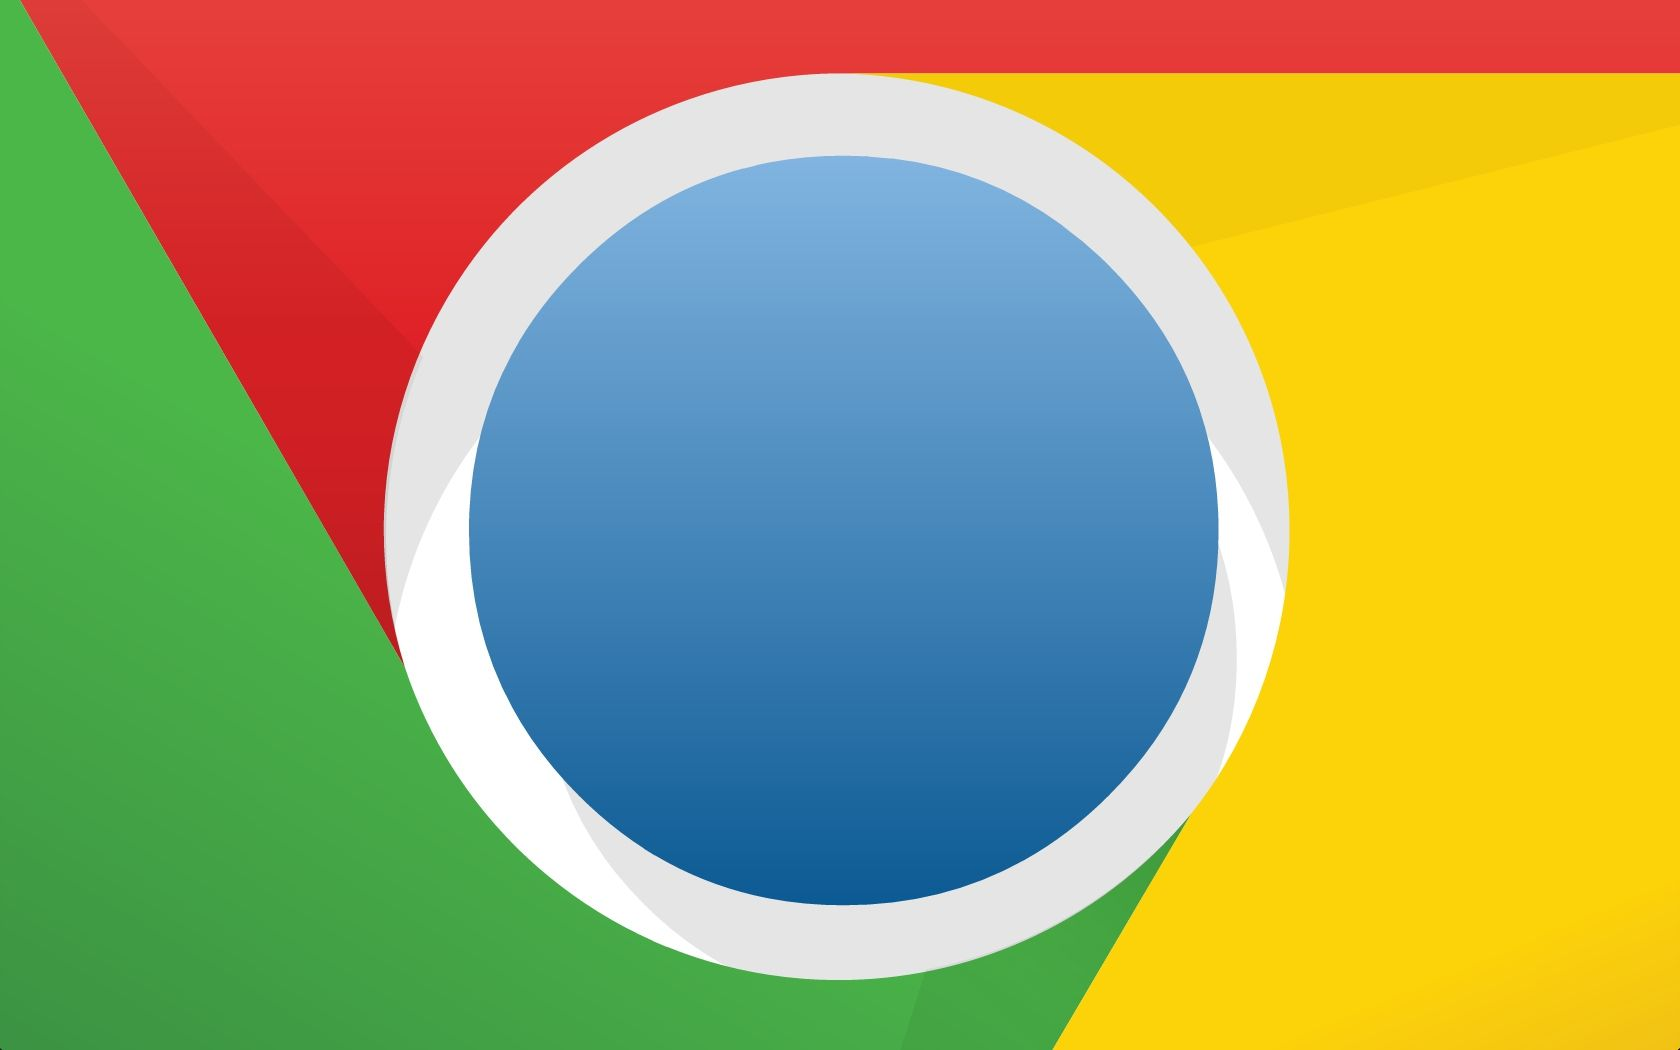 Google's latest Chrome update will throttle background